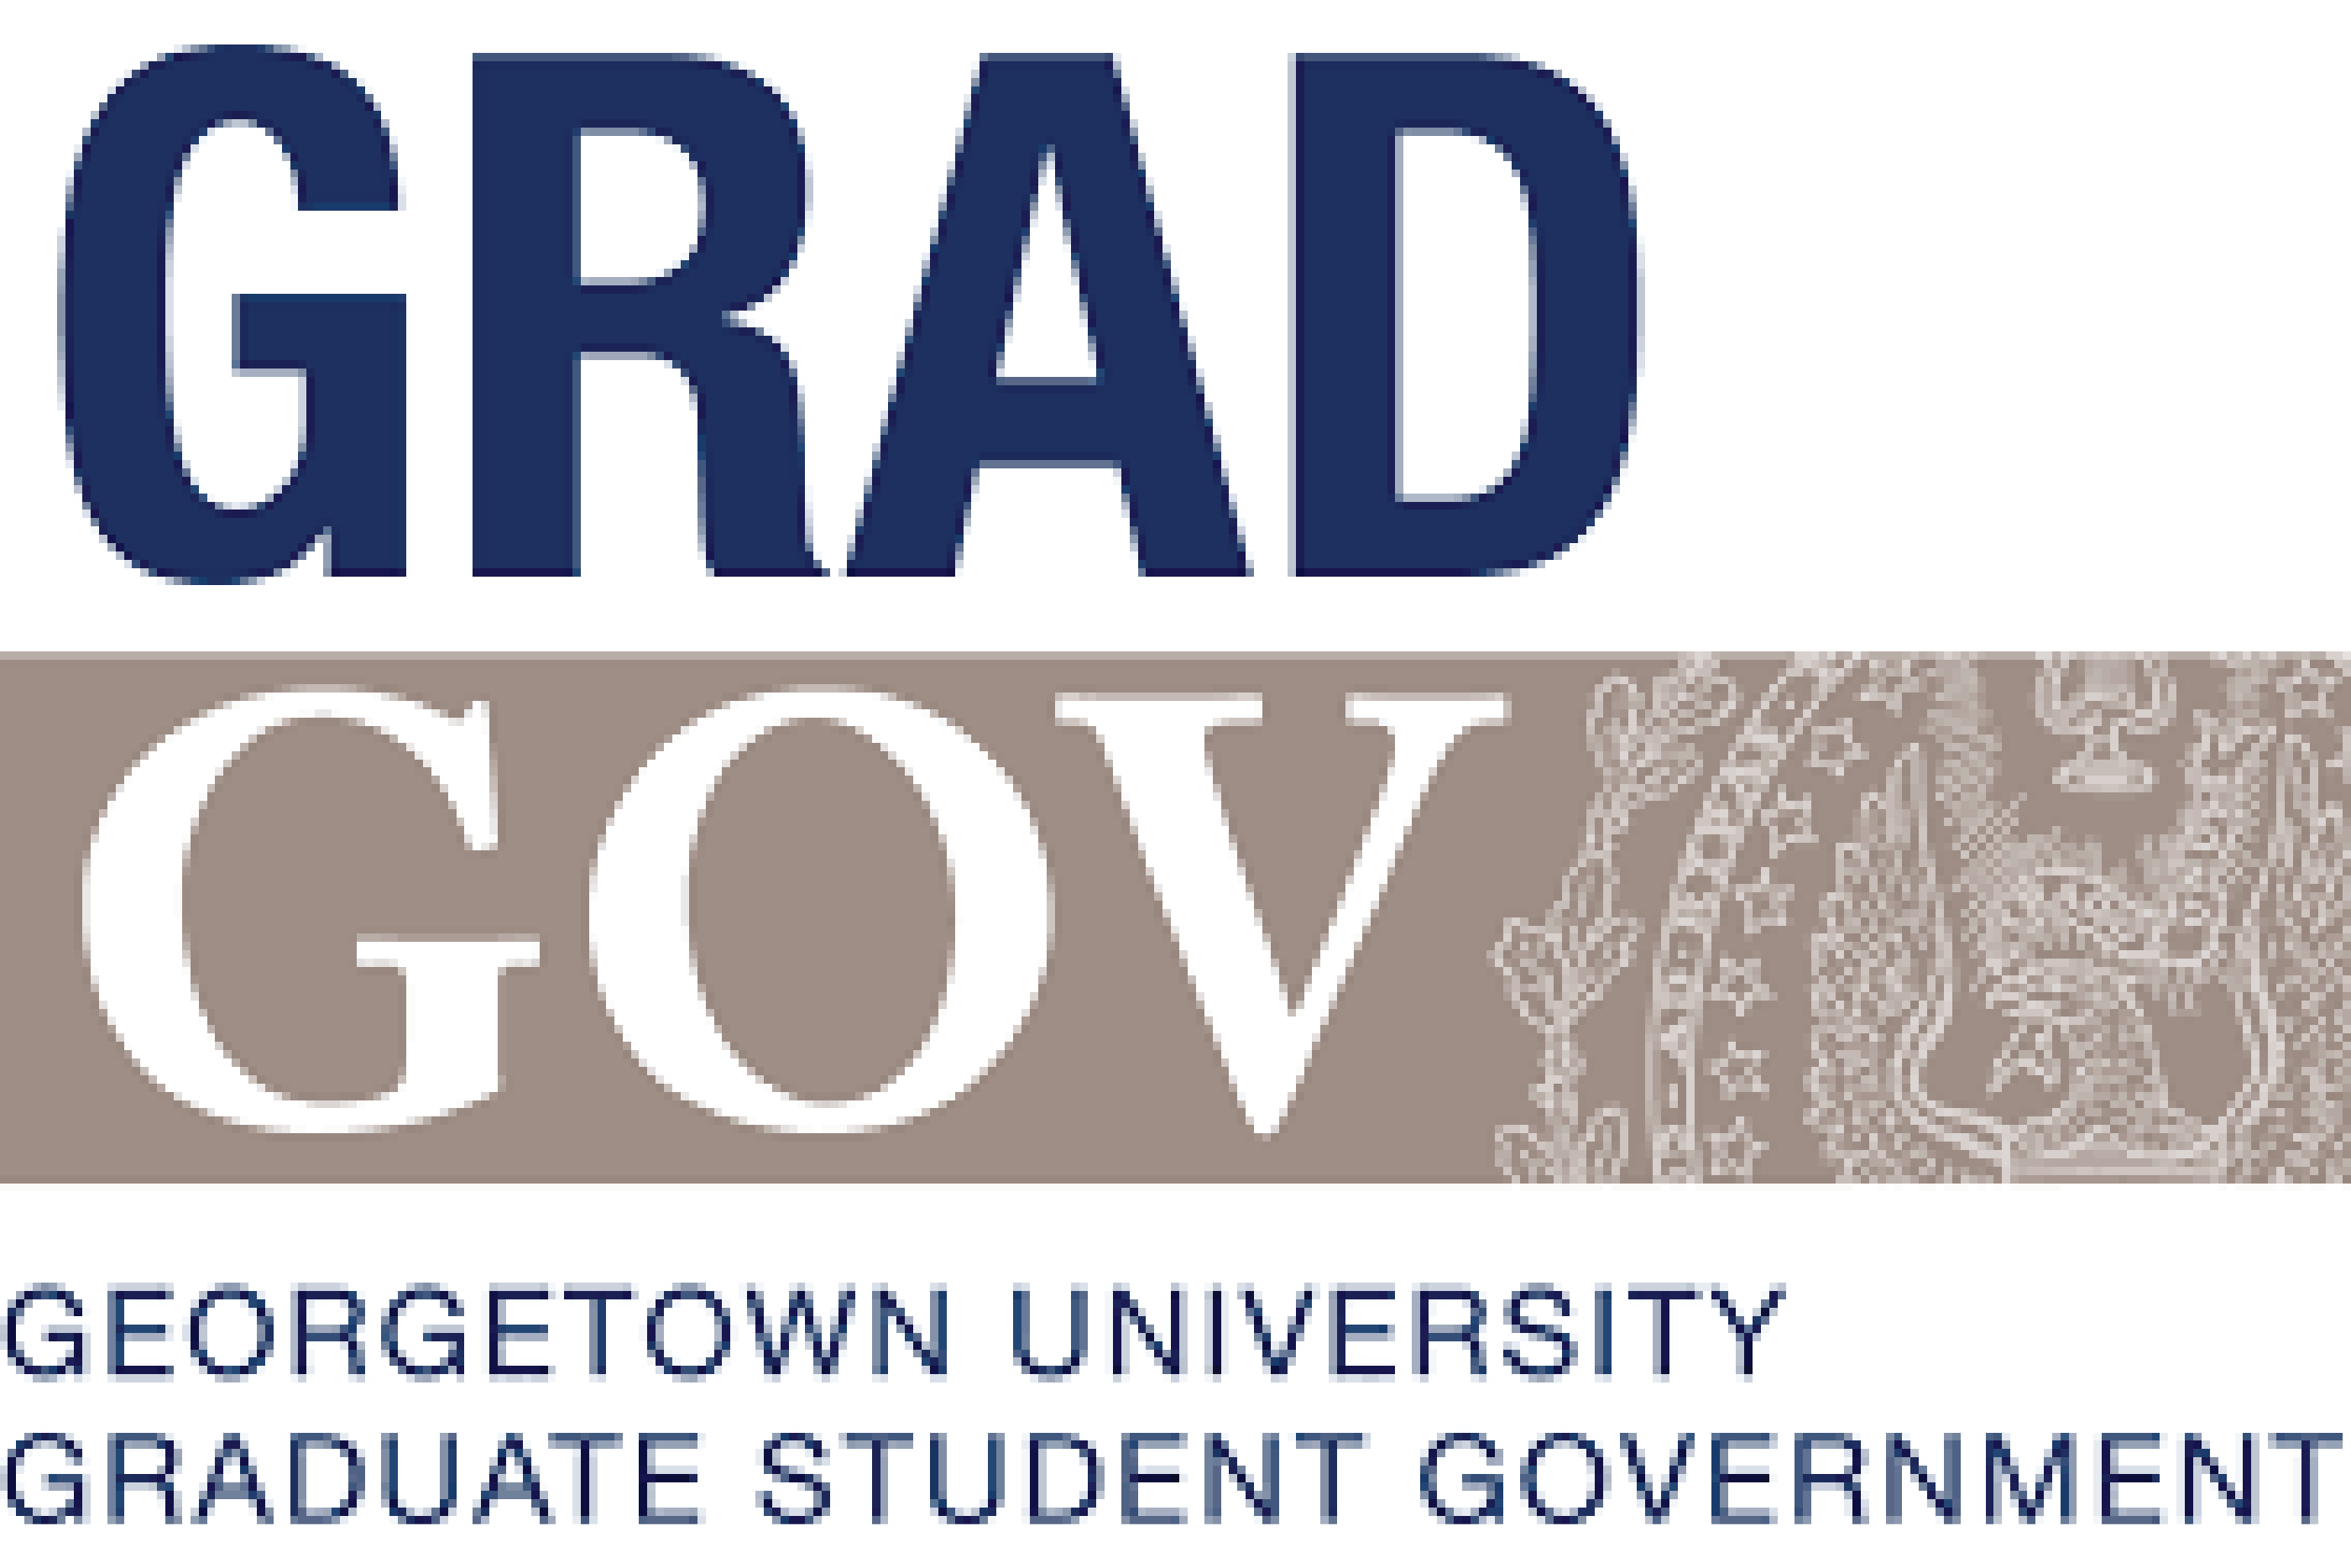 Georgetown University Graduate Student -- Government Grad GOV logo